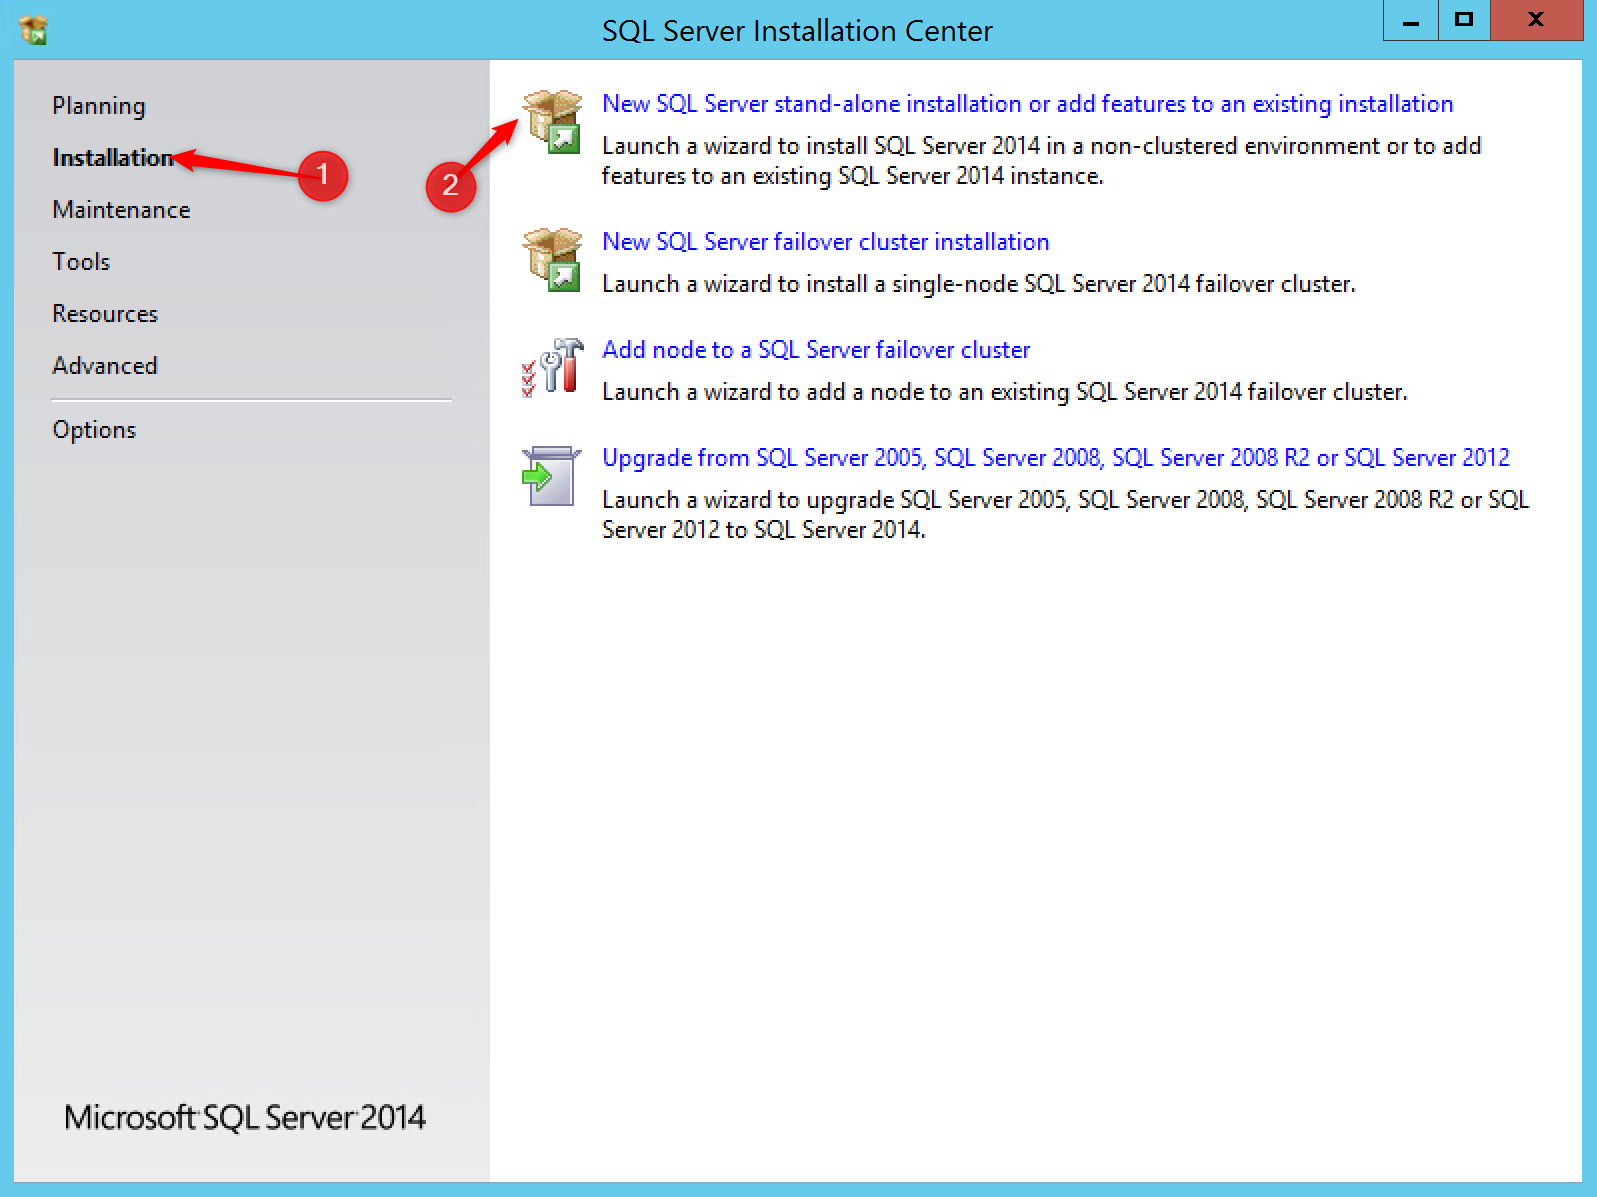 Install Veeam One - Blog on Veeam and other Technologies